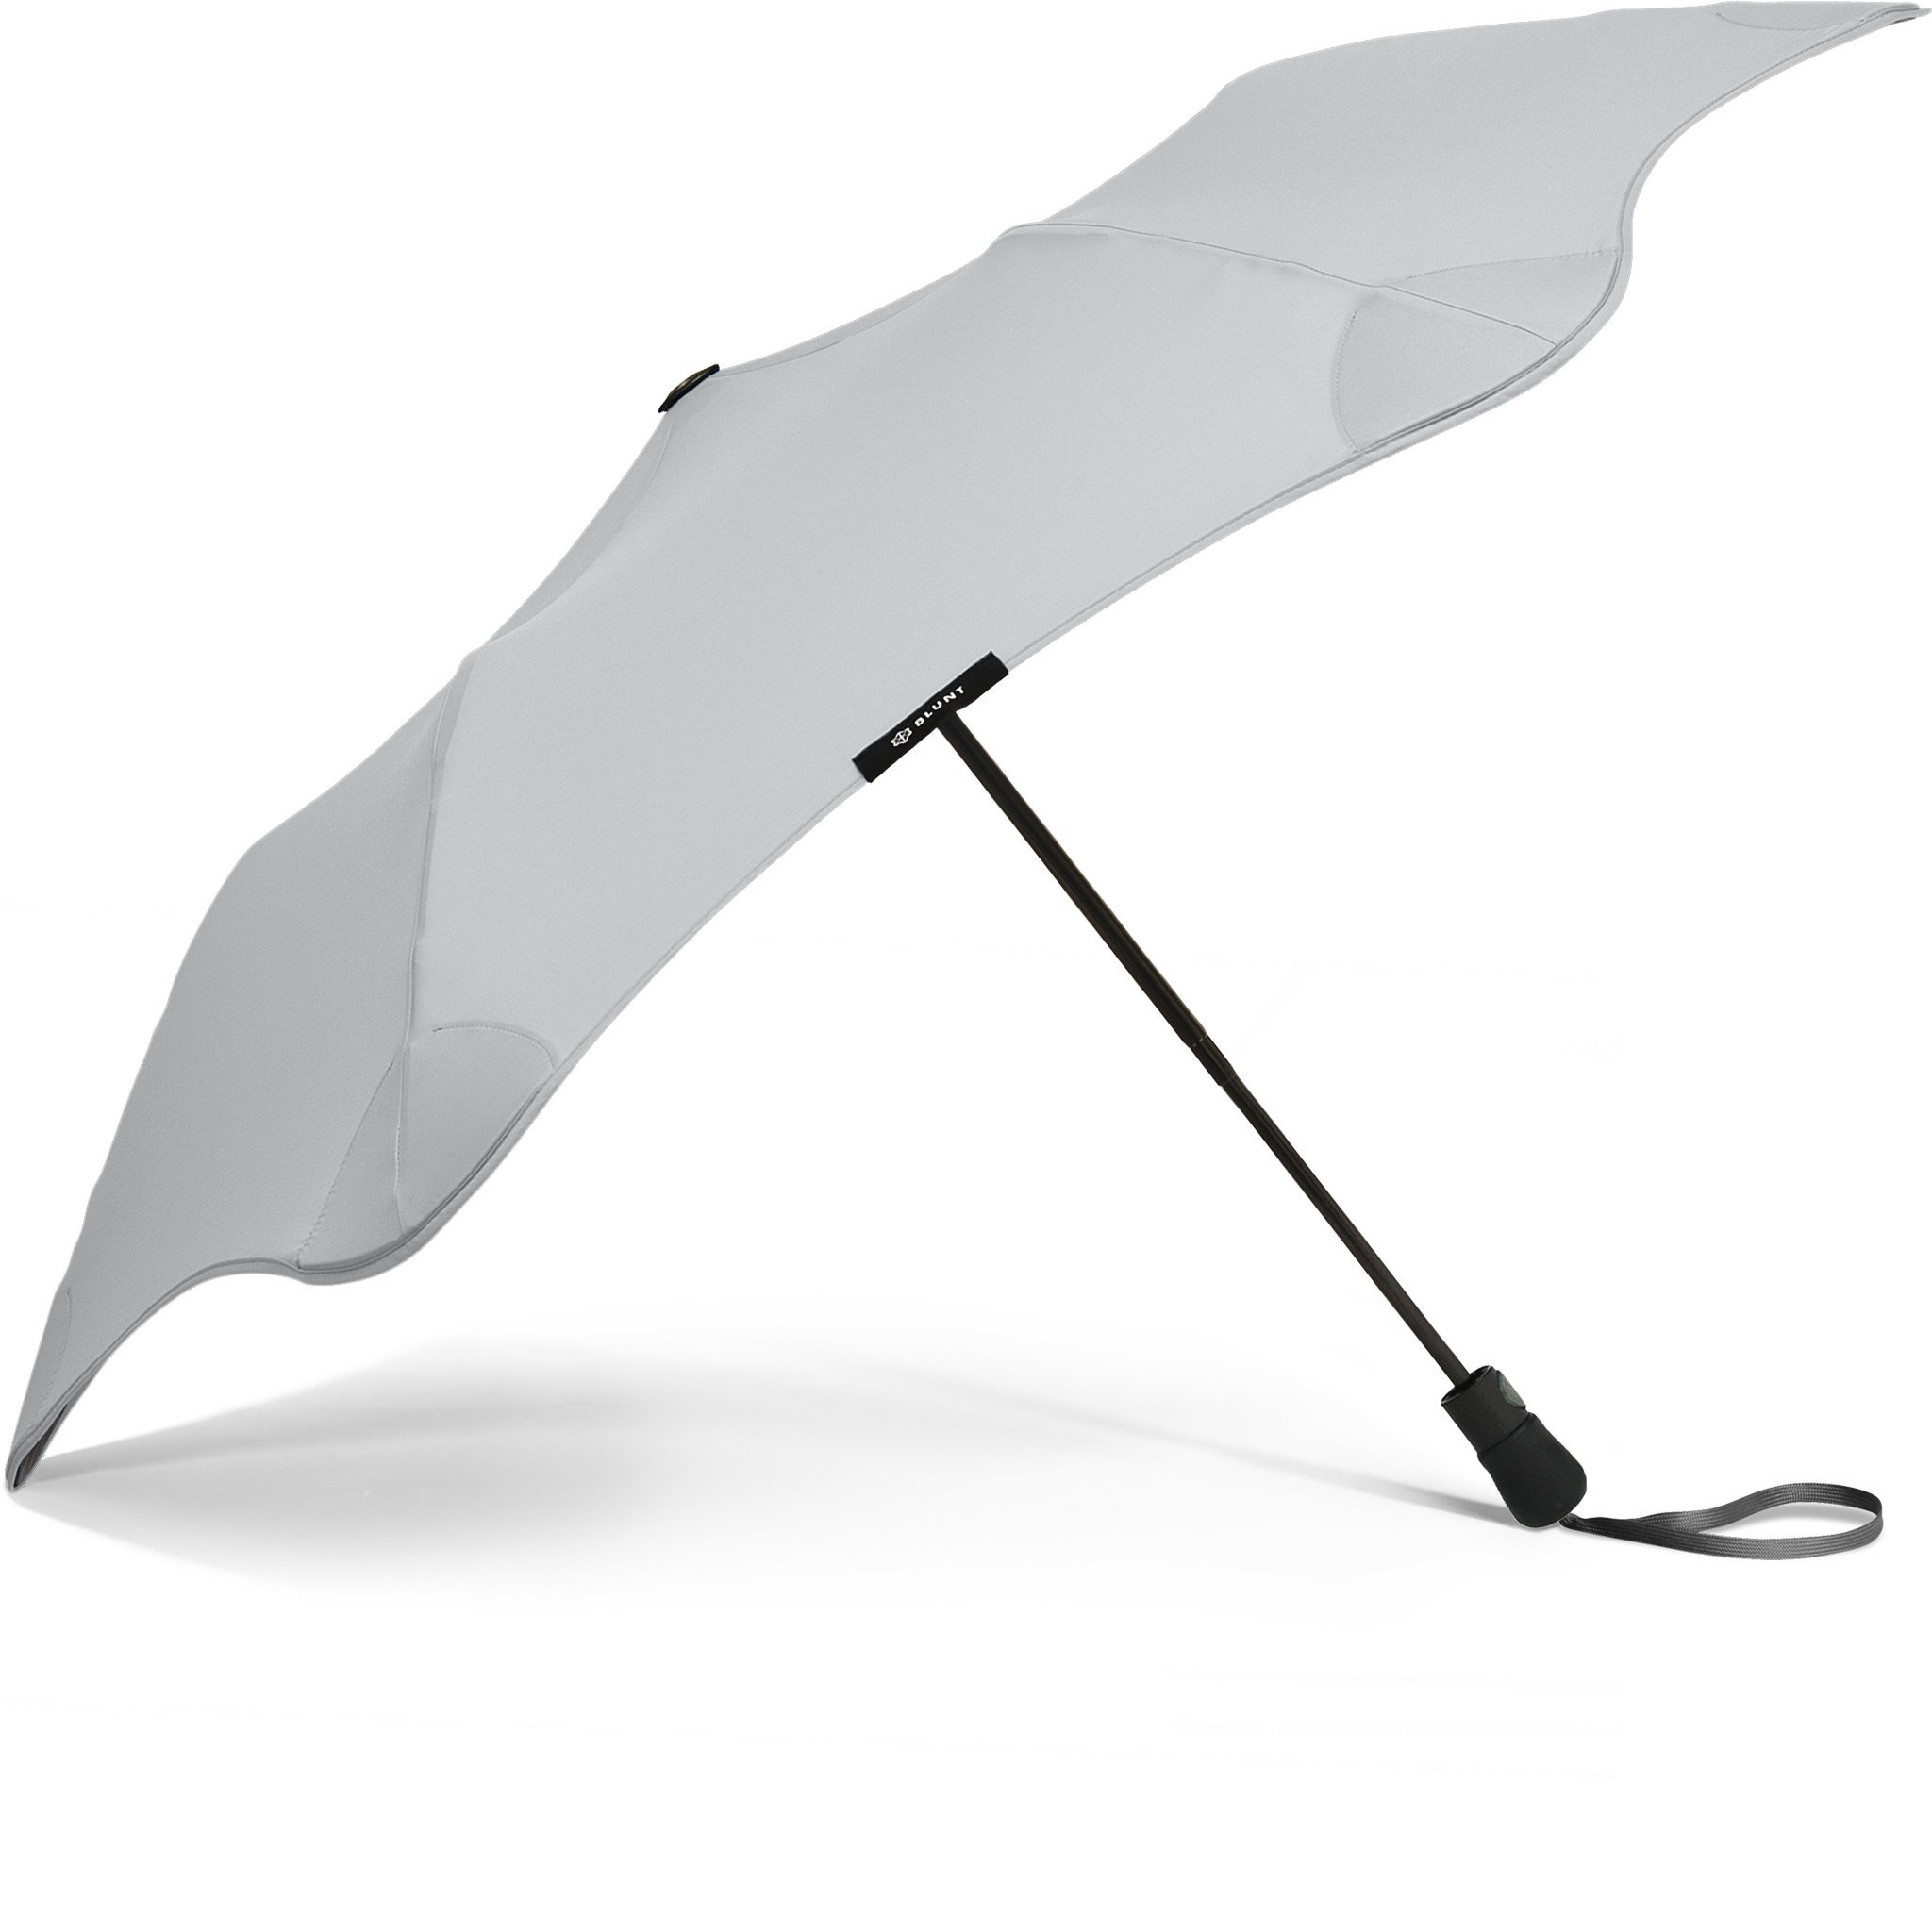 """BLUNT Metro Travel Umbrella with 37"""" Canopy and Wind Resistant Radial Tensioning System - Grey"""